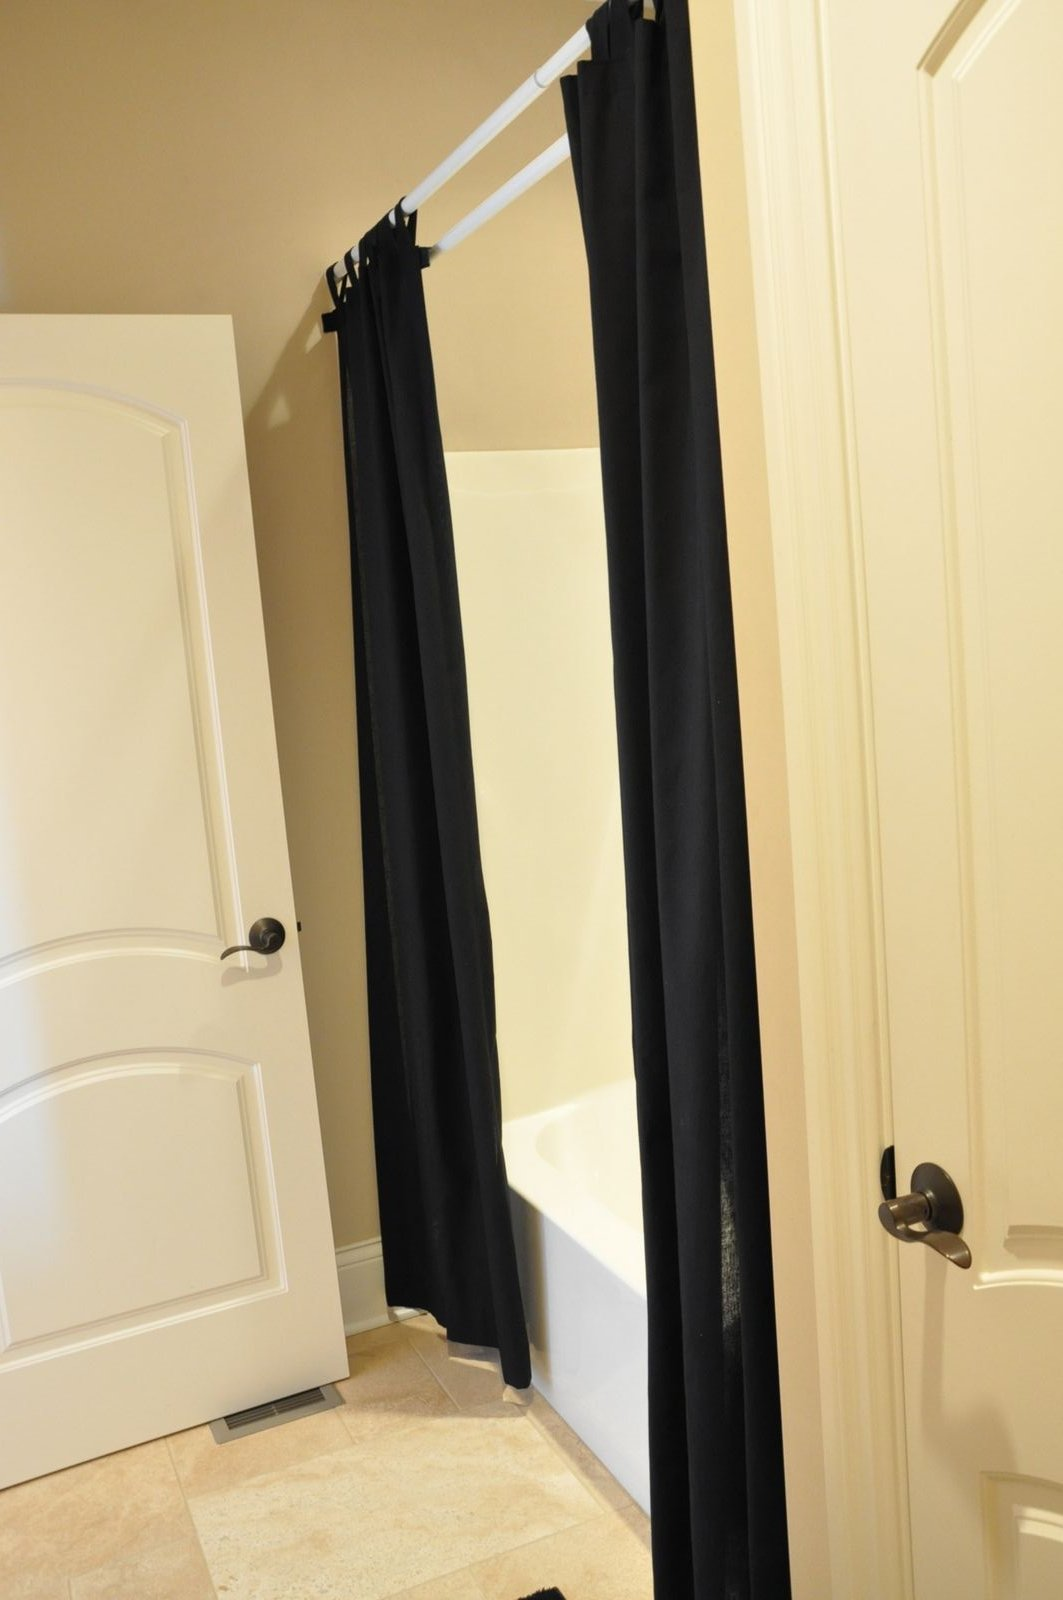 Shower Curtains With Flair - Evolution of Style